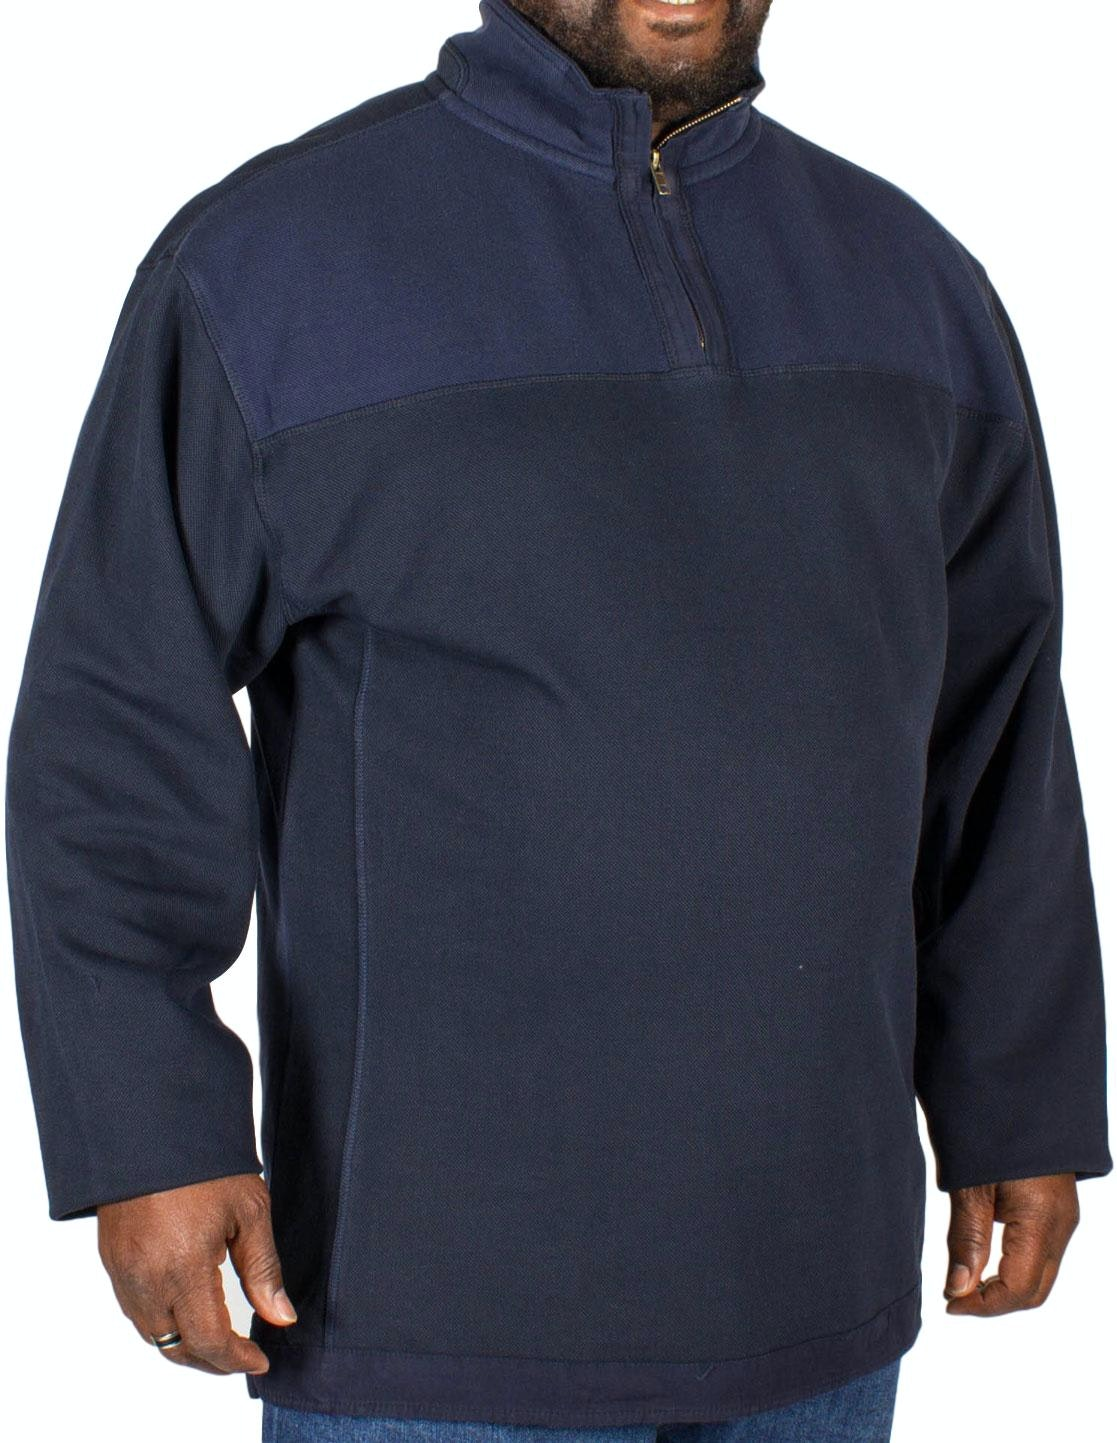 KAM Quarter Zip Top Navy